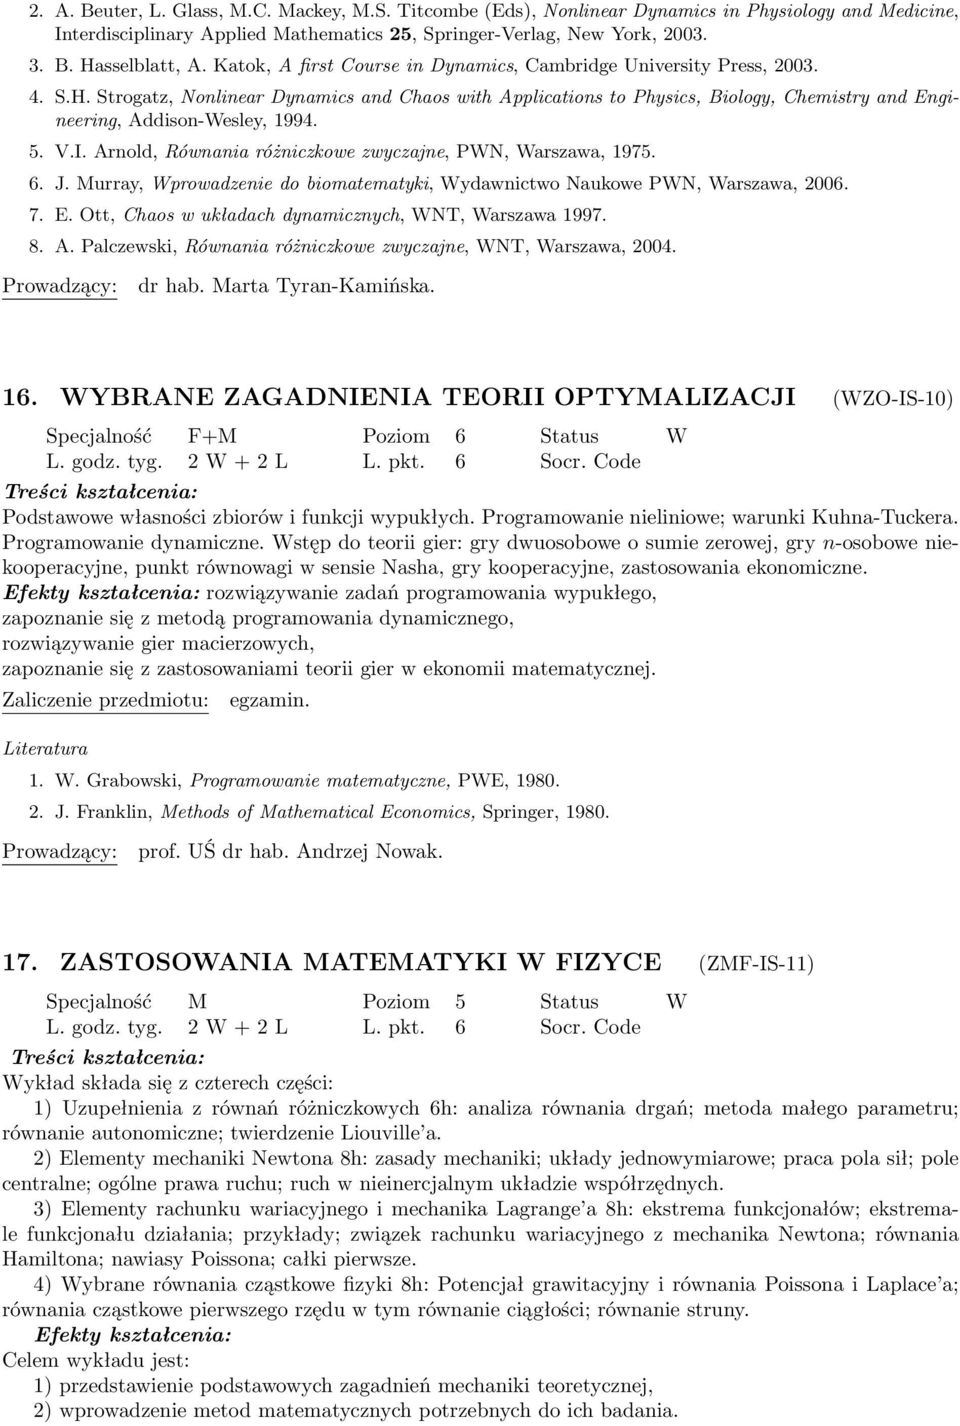 Strogatz, Nonlinear Dynamics and Chaos with Applications to Physics, Biology, Chemistry and Engineering, Addison-Wesley, 1994. 5. V.I. Arnold, Równania różniczkowe zwyczajne, PWN, Warszawa, 1975. 6.